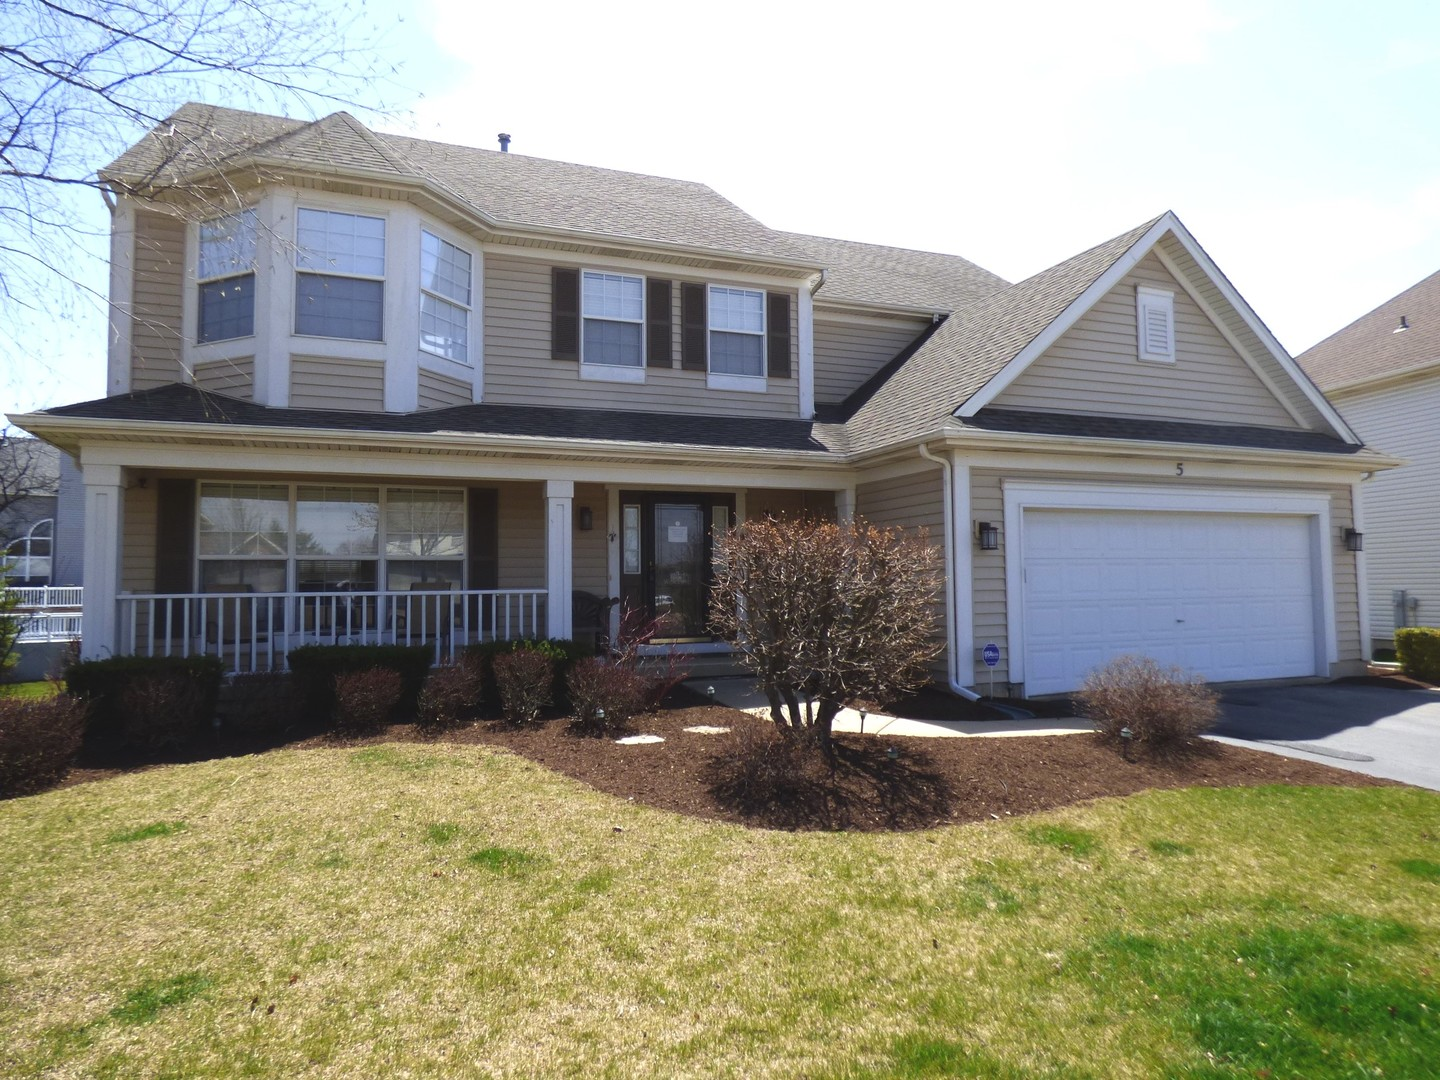 5 Sedgewood Court, Algonquin in Kane County, IL 60102 Home for Sale